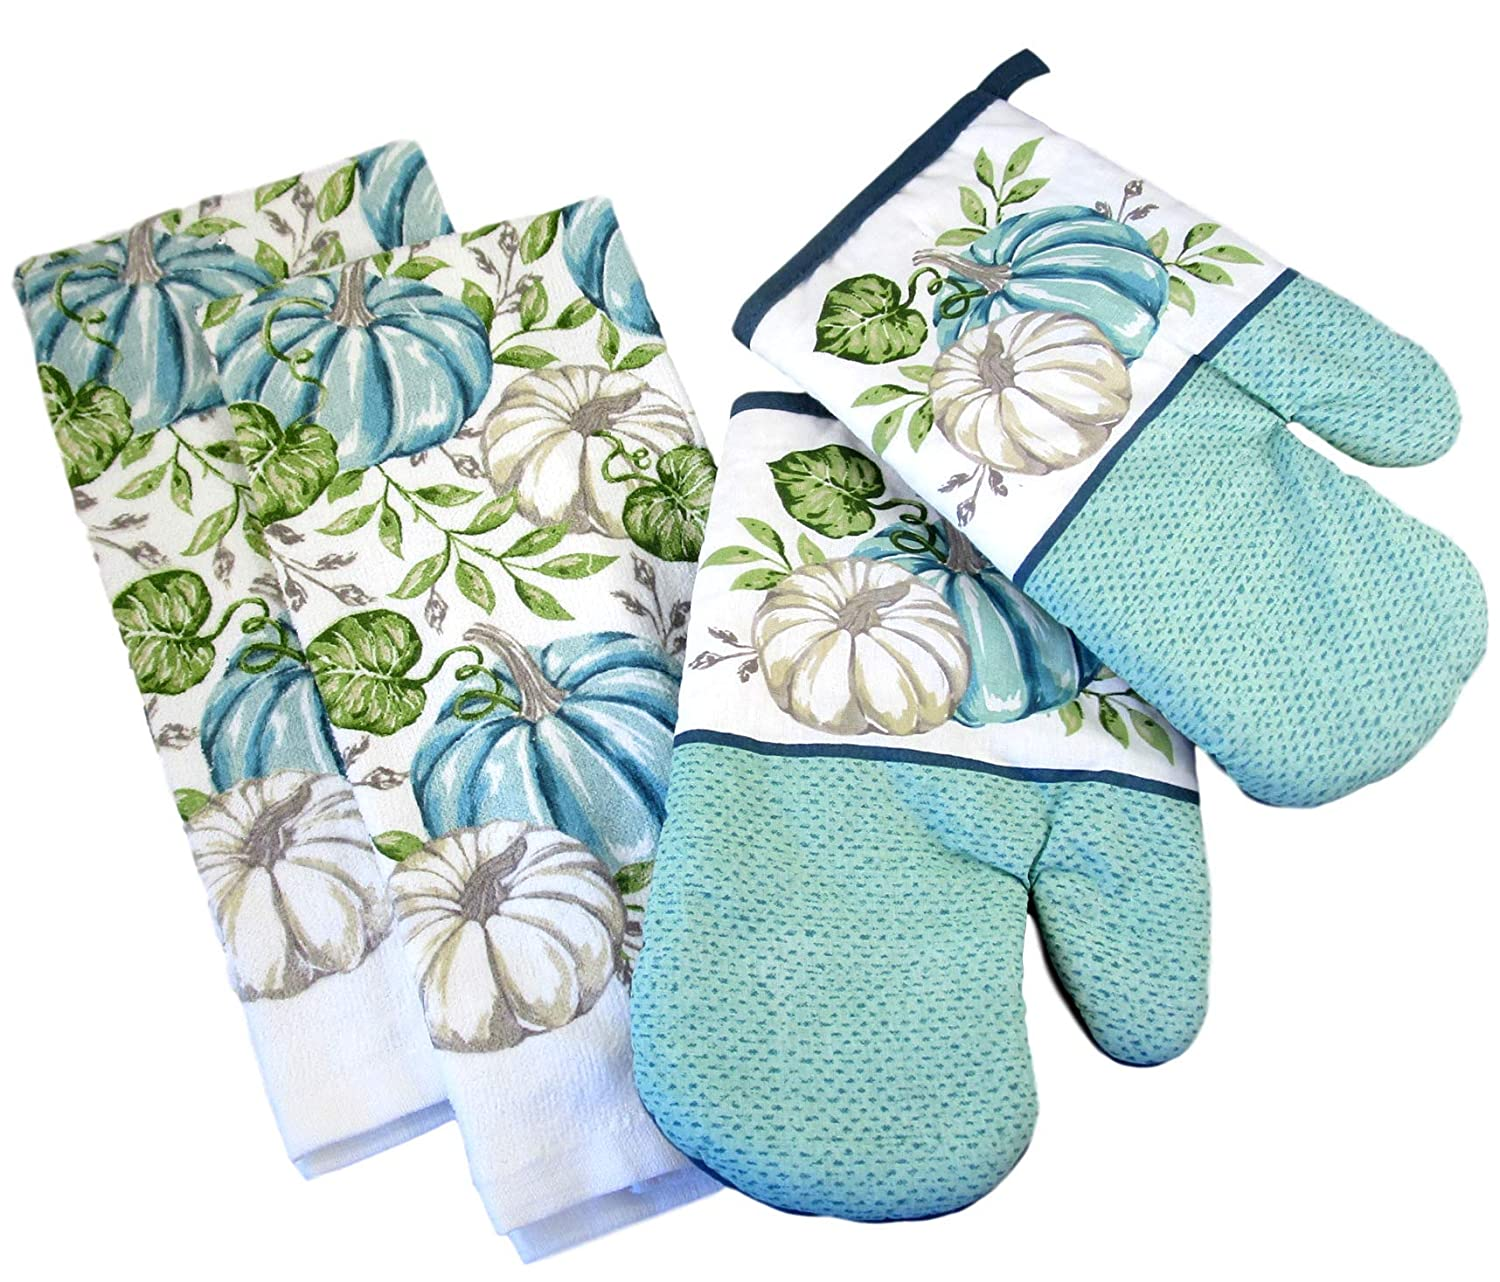 Fall Harvest Thanksgiving Kitchen Towels and Oven Mitts - Bundle of 4 Items: 2 Dish Towels and 2 Oven Mitts (Teal and White Pumpkins - Green Leaves)